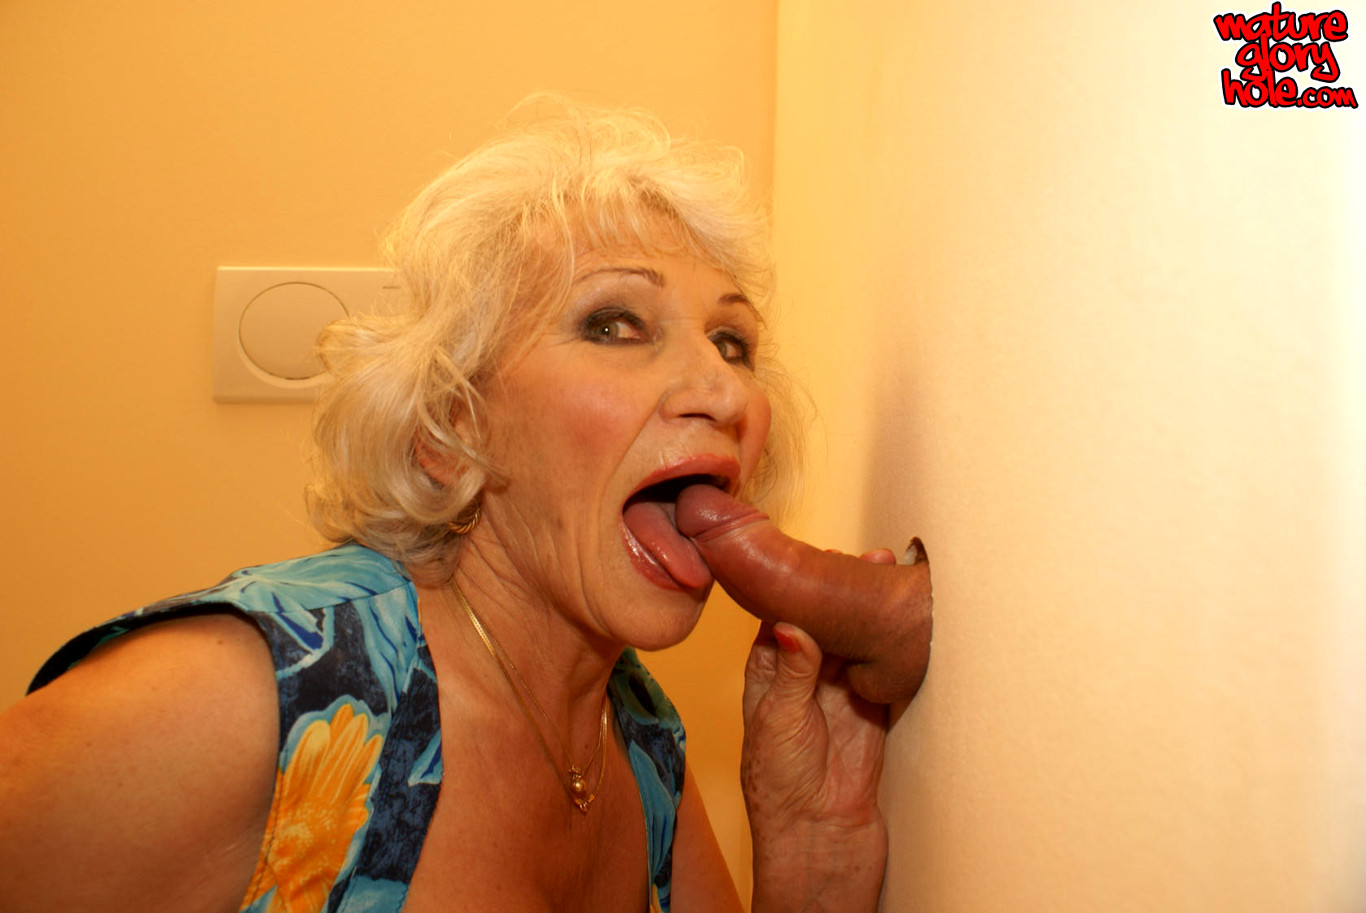 Free glory hole cumshot pictures